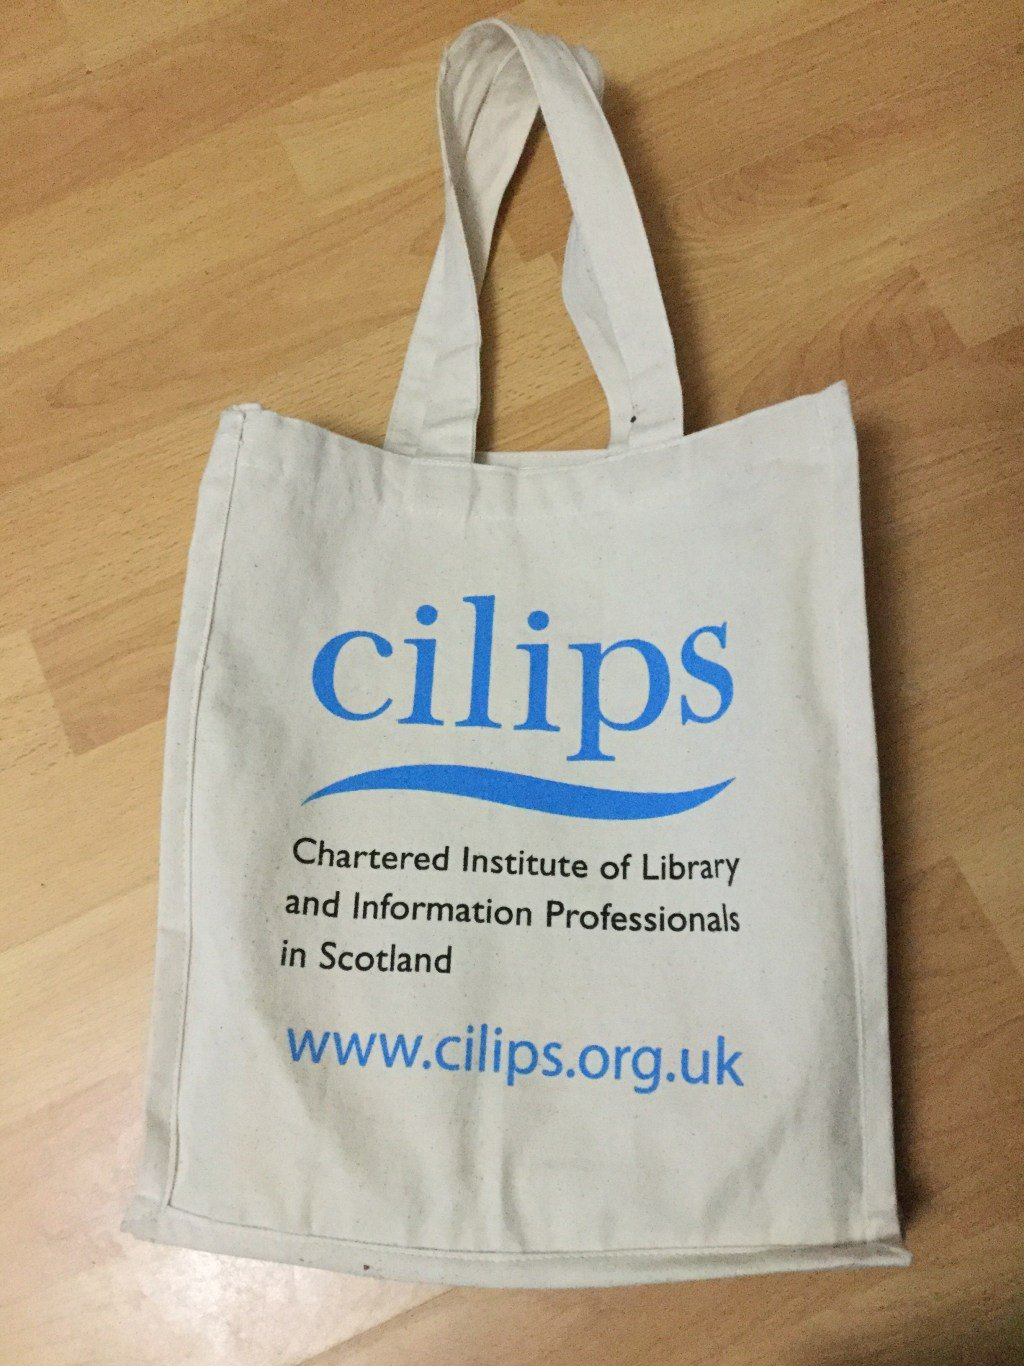 On the CILPS Conference 2017 #CILIPS17 #CilipFellowship https://t.co/HwvOZsKW59 https://t.co/ppxjWCyvK2